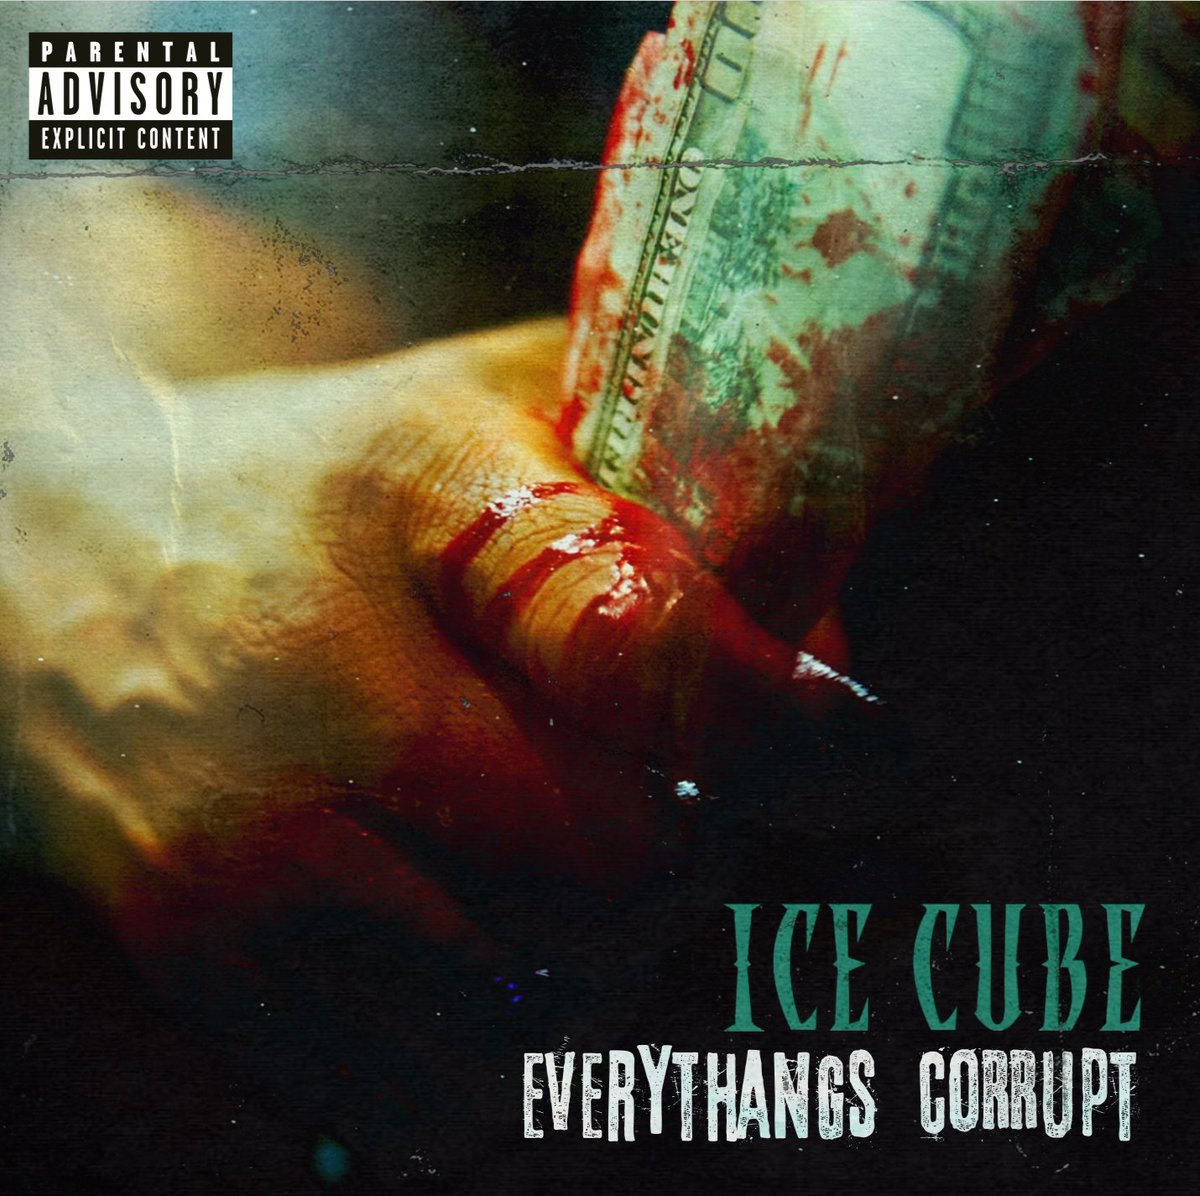 #EverythangsCorrupt available everywhere now: https://t.co/gILUrxR4wh https://t.co/9jef6J1MMJ